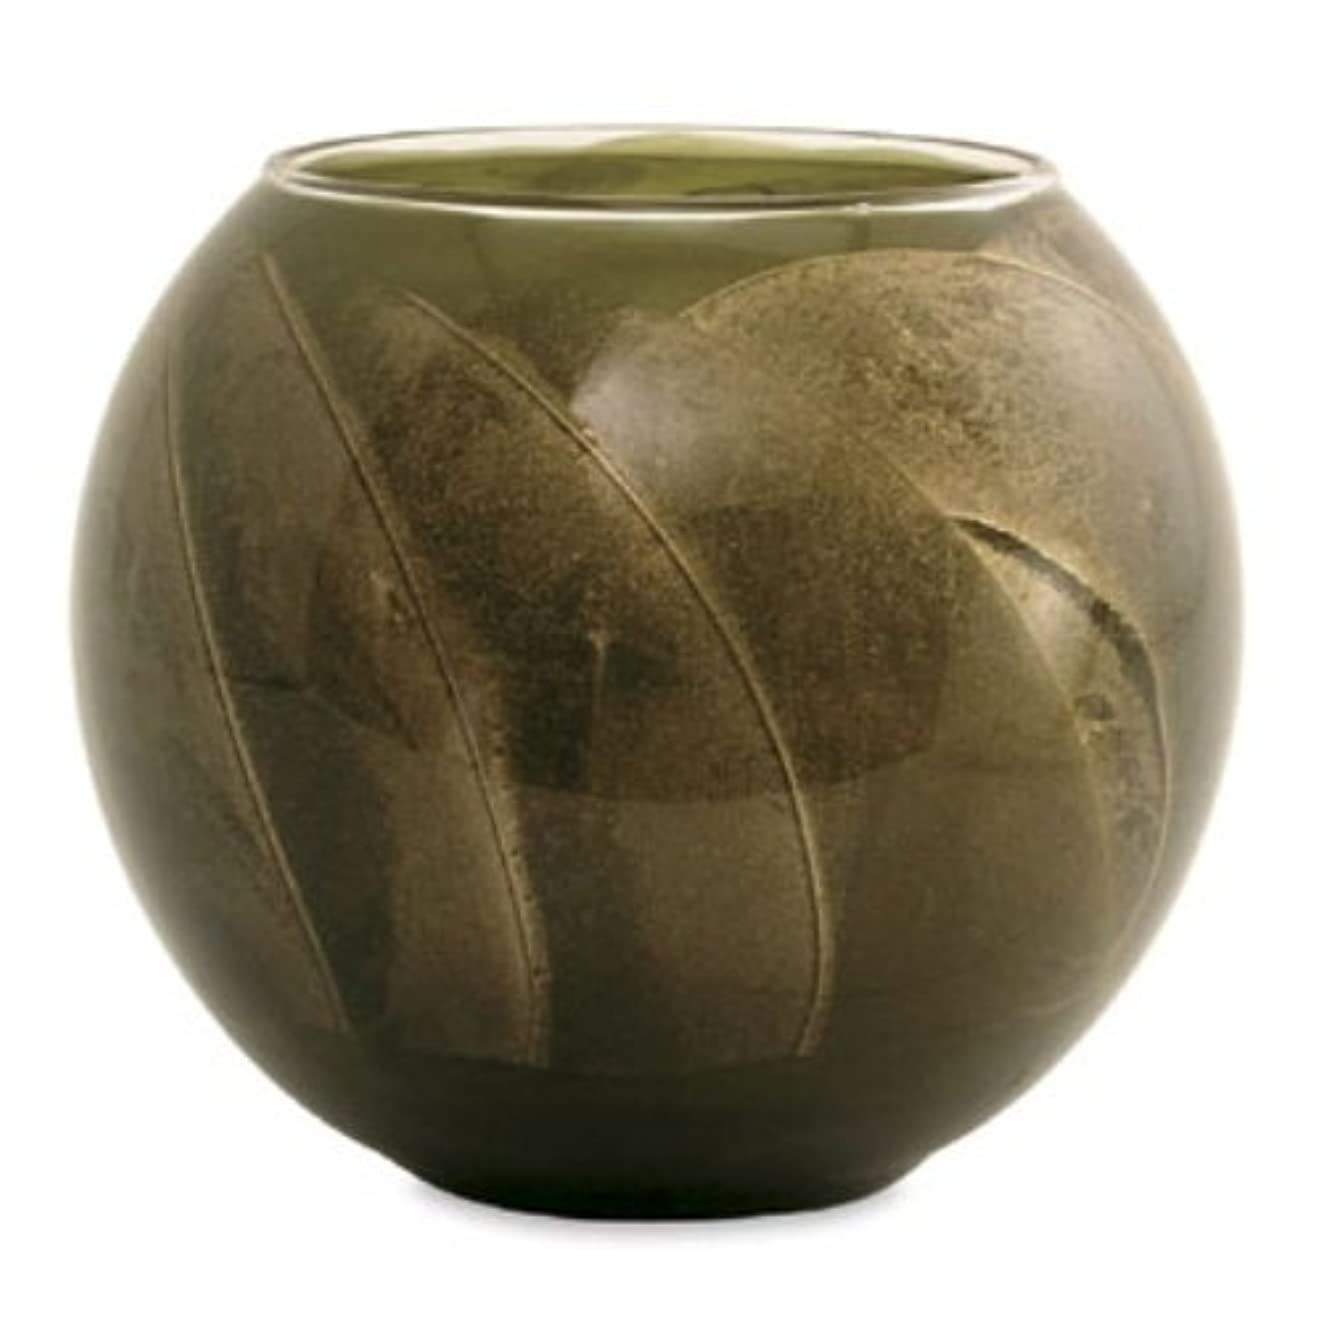 他のバンドでシンプルさ繰り返すNorthern Lights Candles Esque Polished Globe - 4 inch Olive by Northern Lights Candles [並行輸入品]